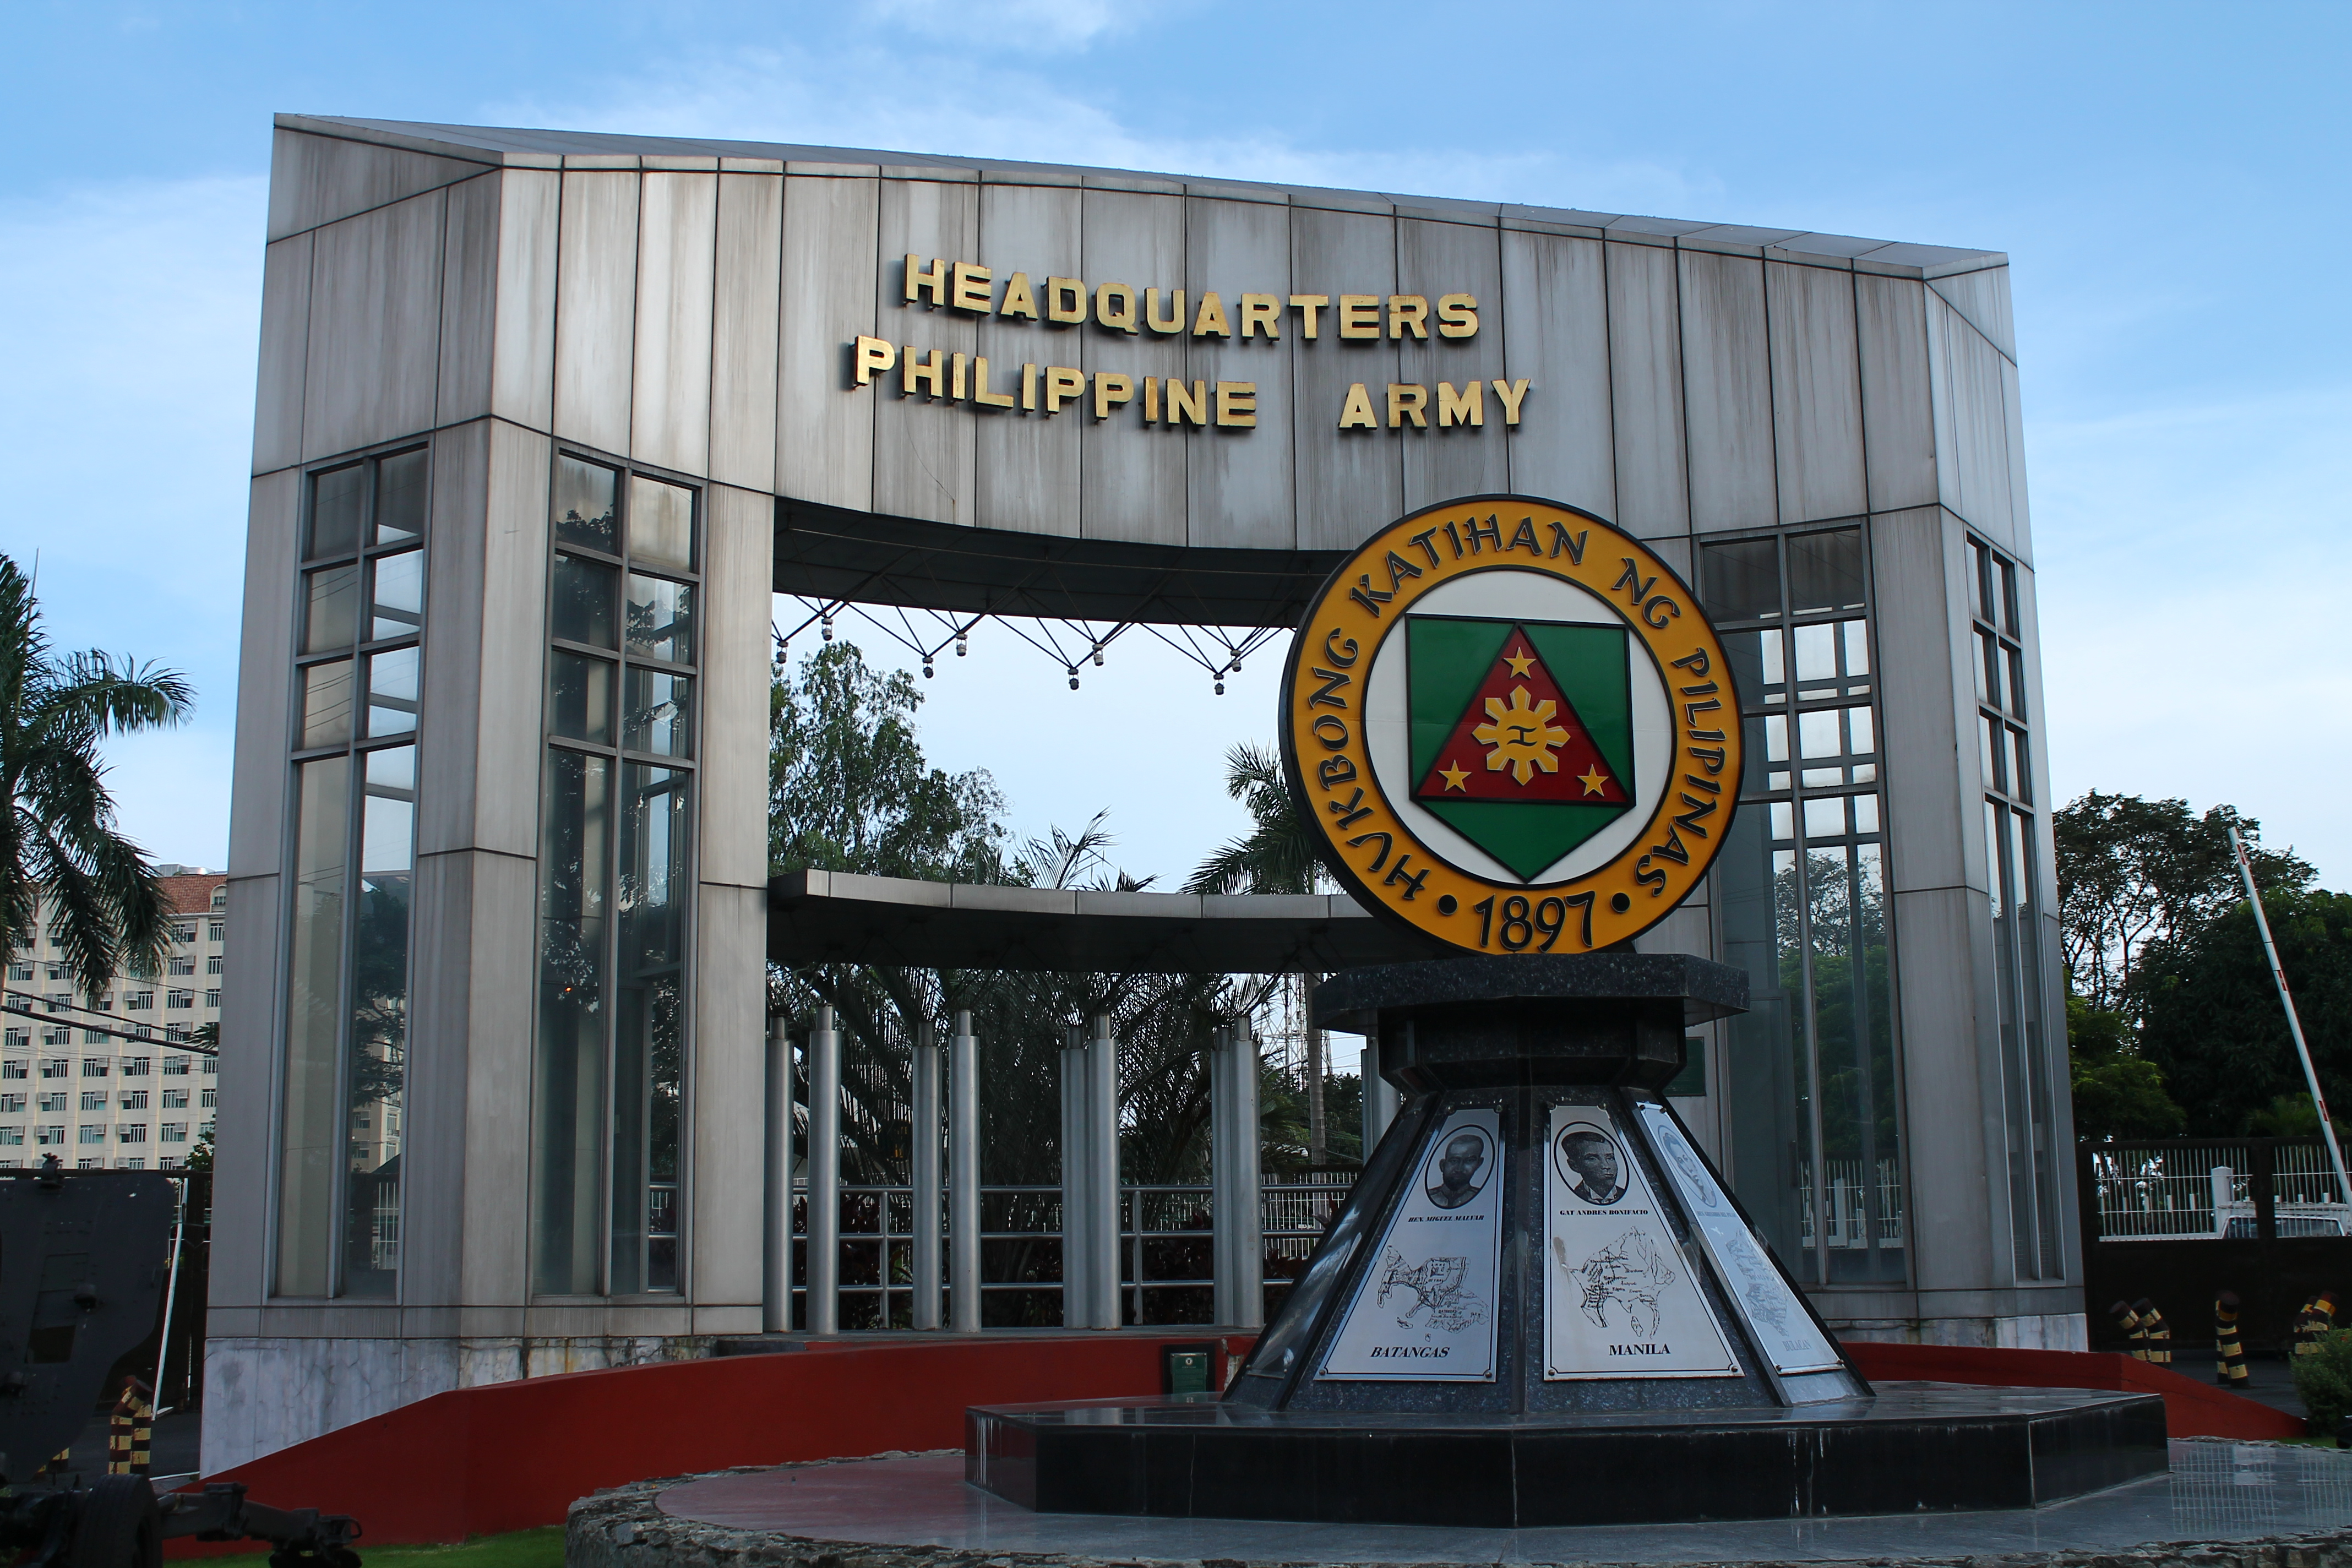 File:Philippine Army HQ Taguig.JPG - Wikimedia Commons